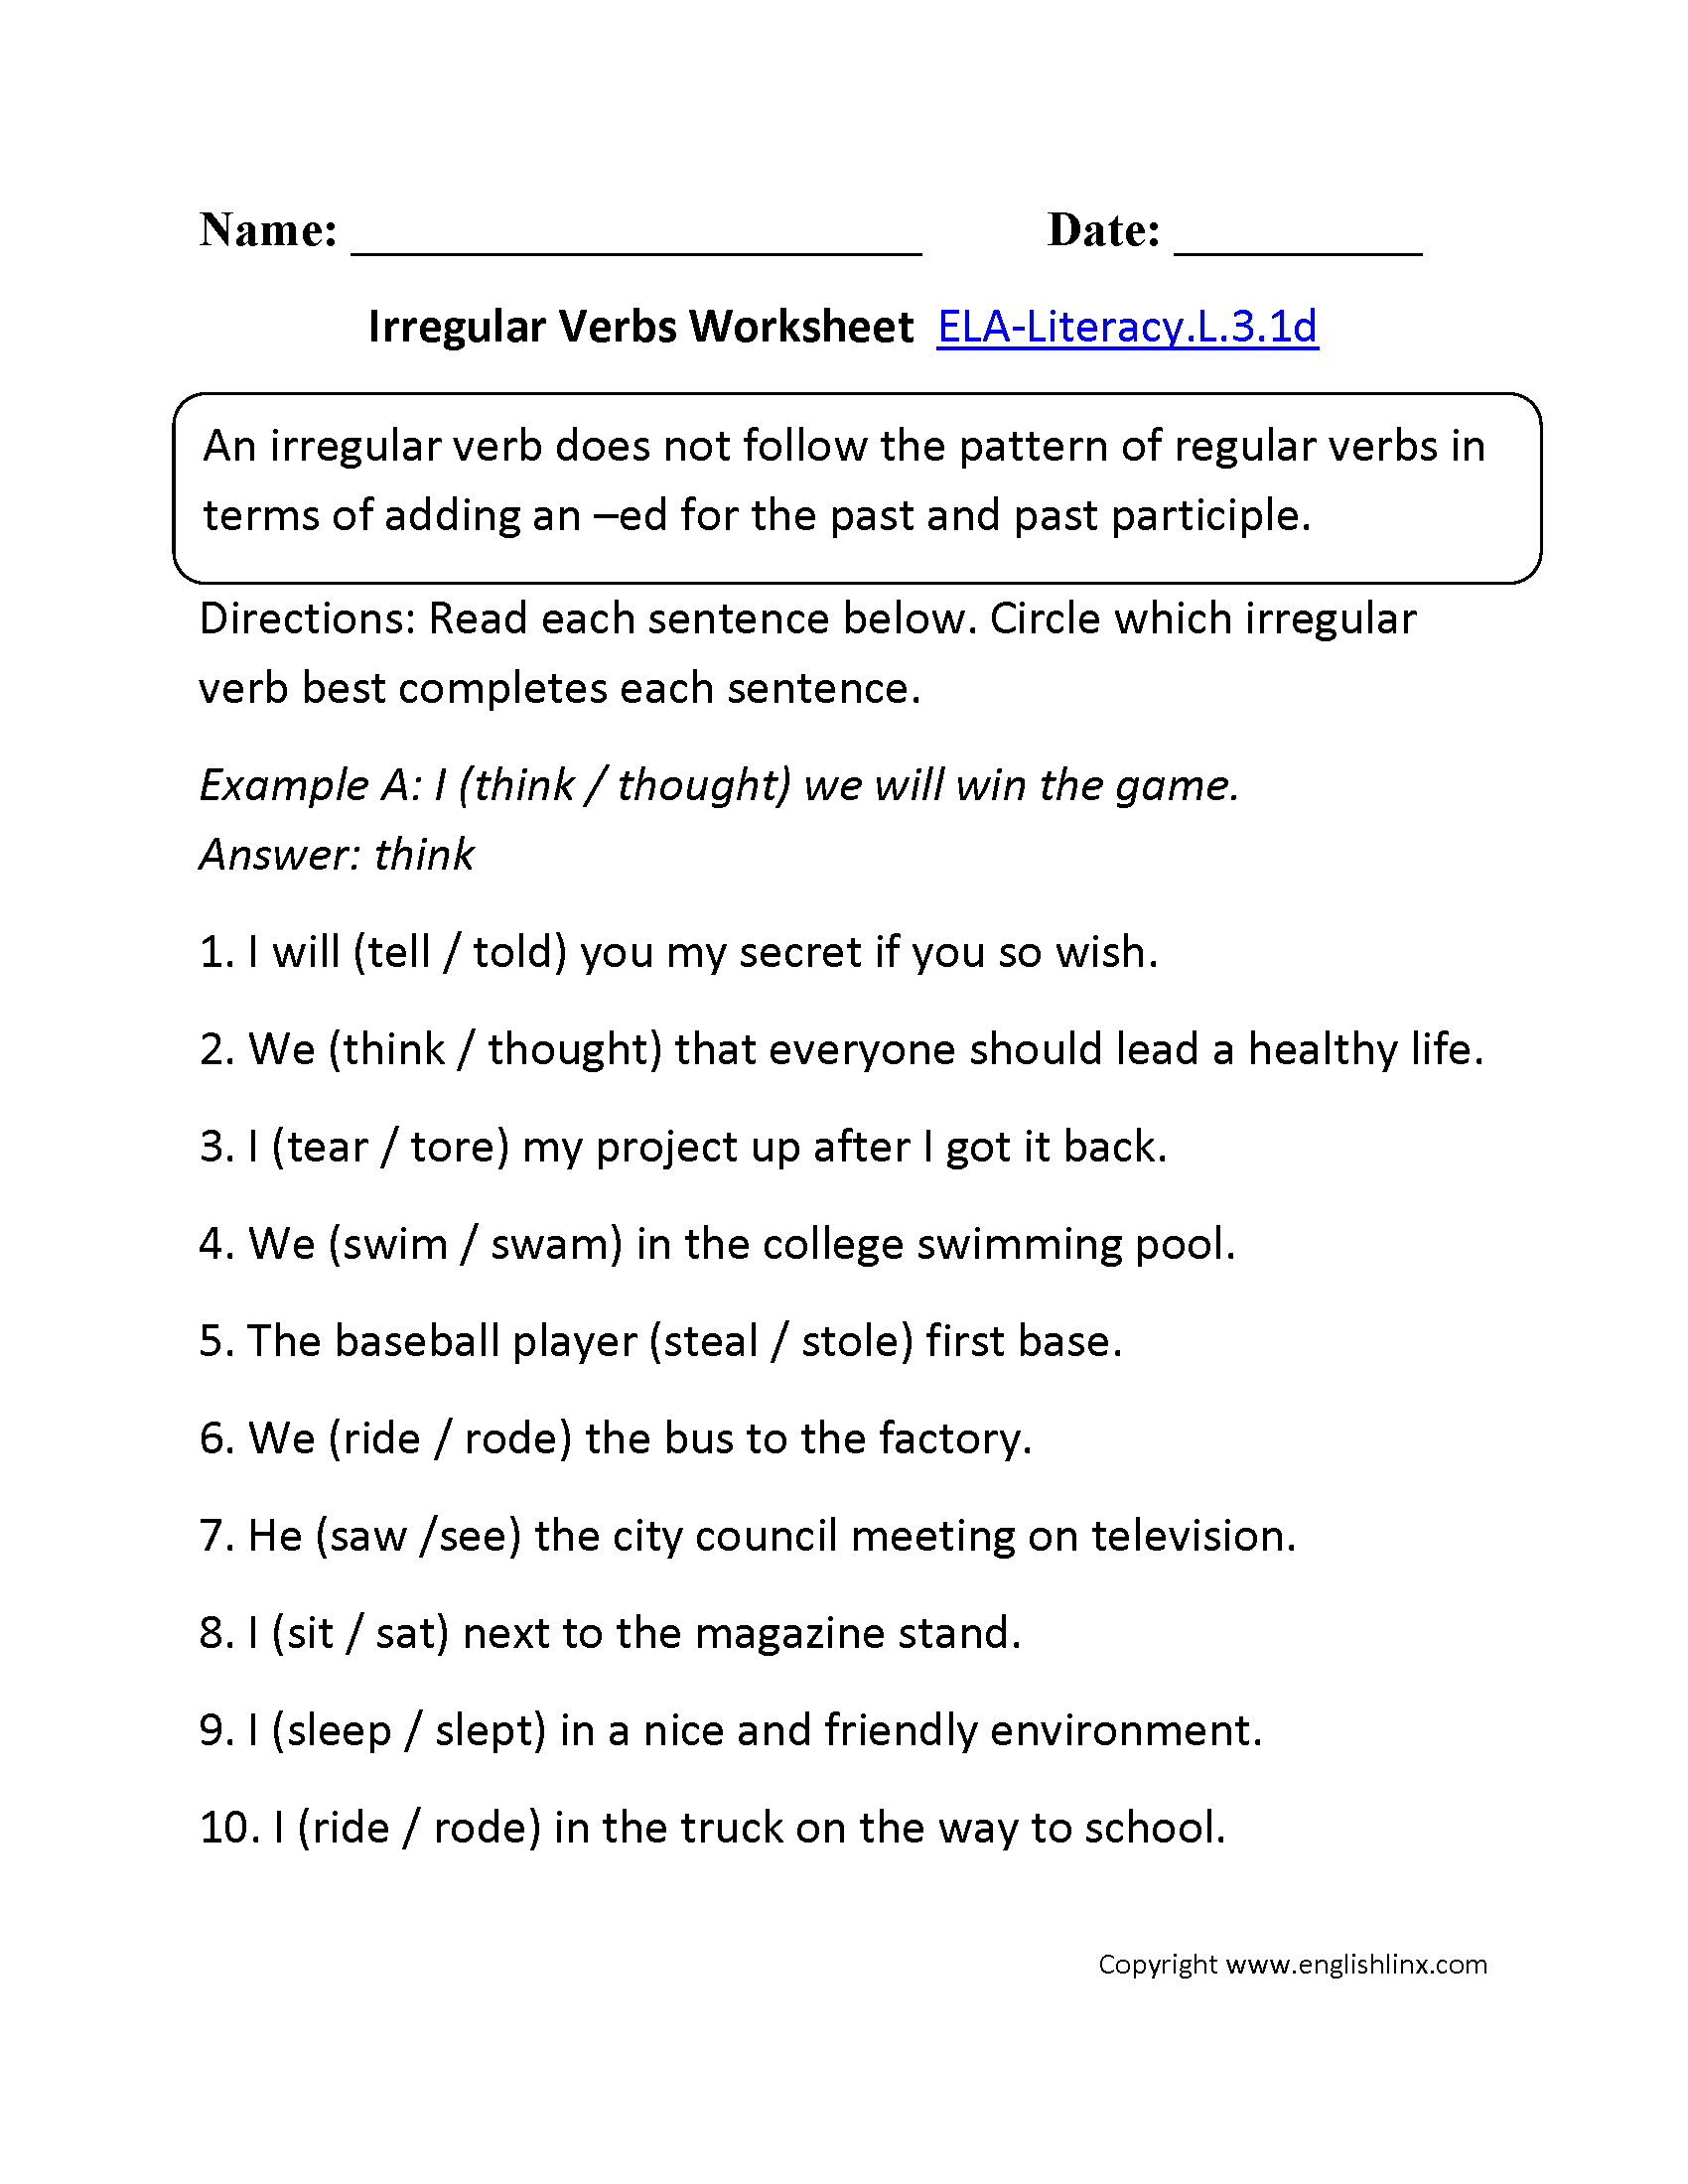 Worksheet Homework 3rd Grade 3rd grade common core language worksheets irregular verbs worksheet 1 ela literacy l 3 1d worksheet